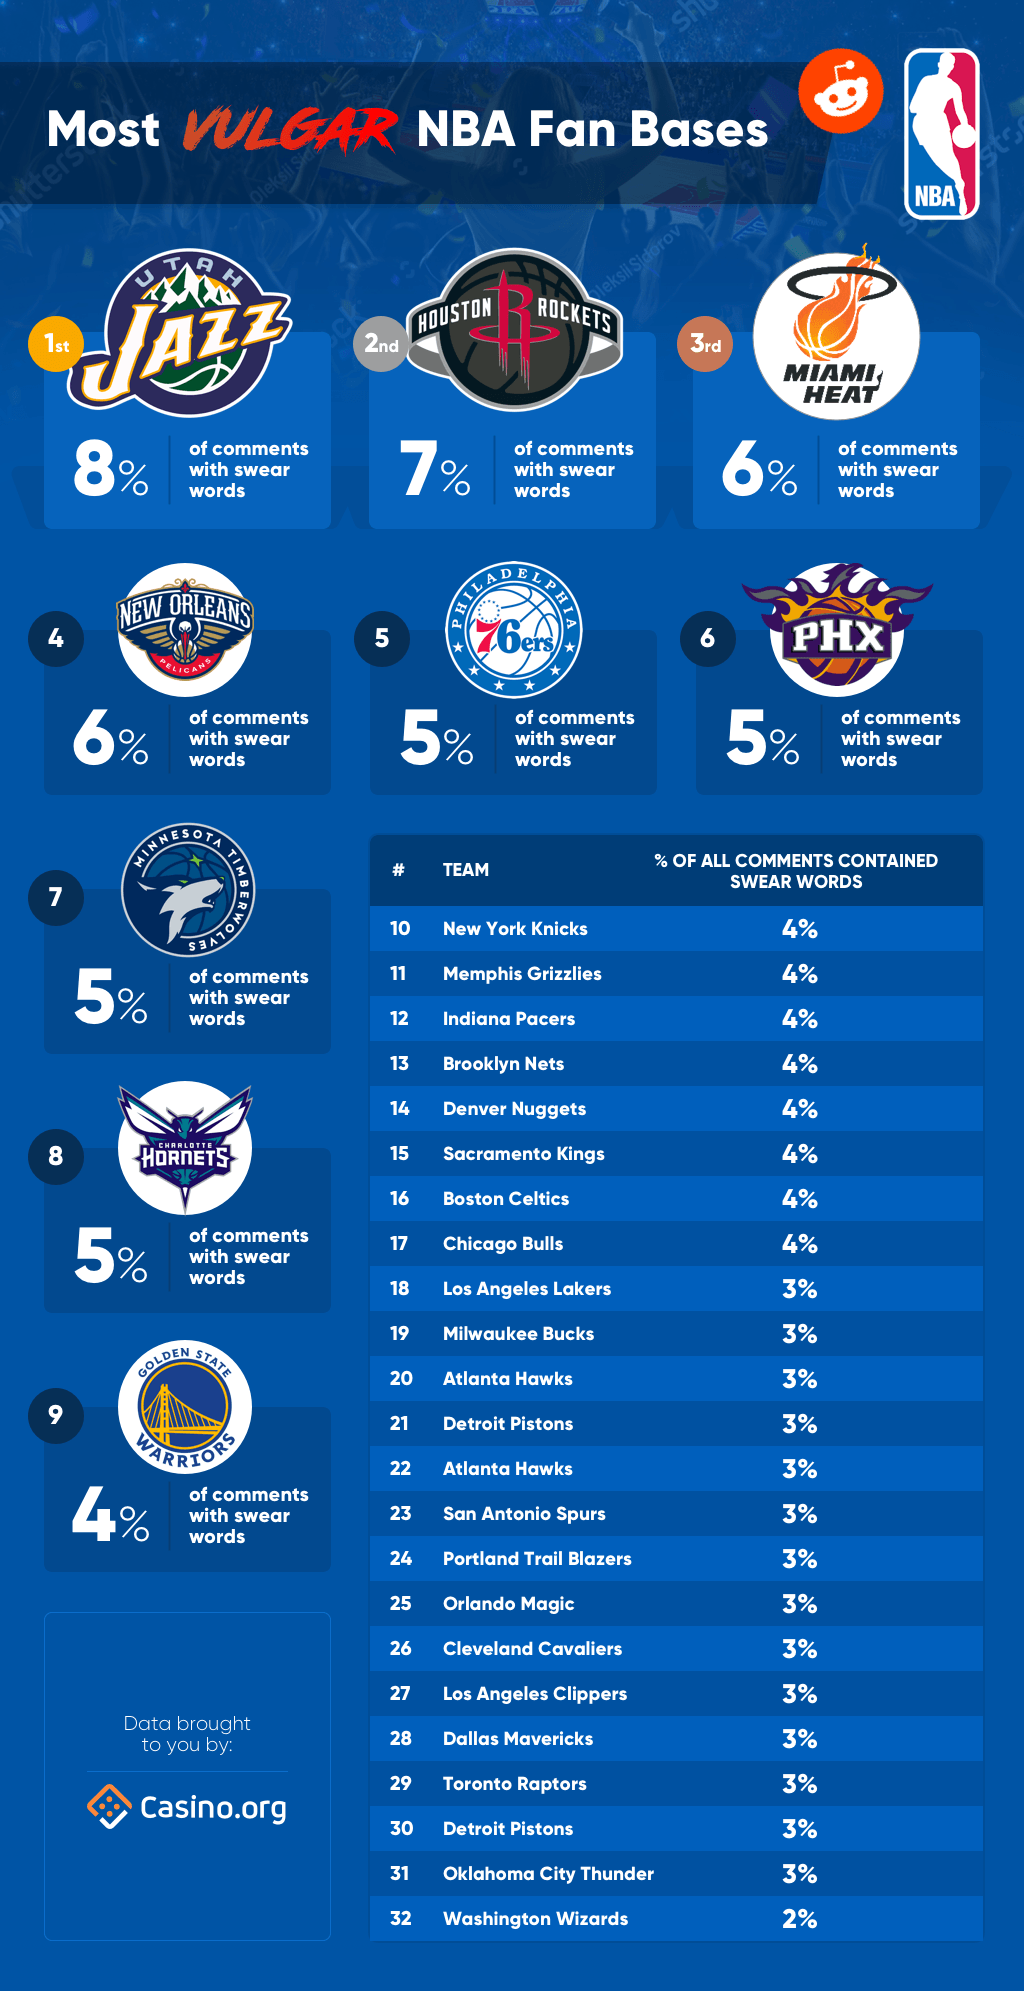 Most Vulgar NBA Fanbases